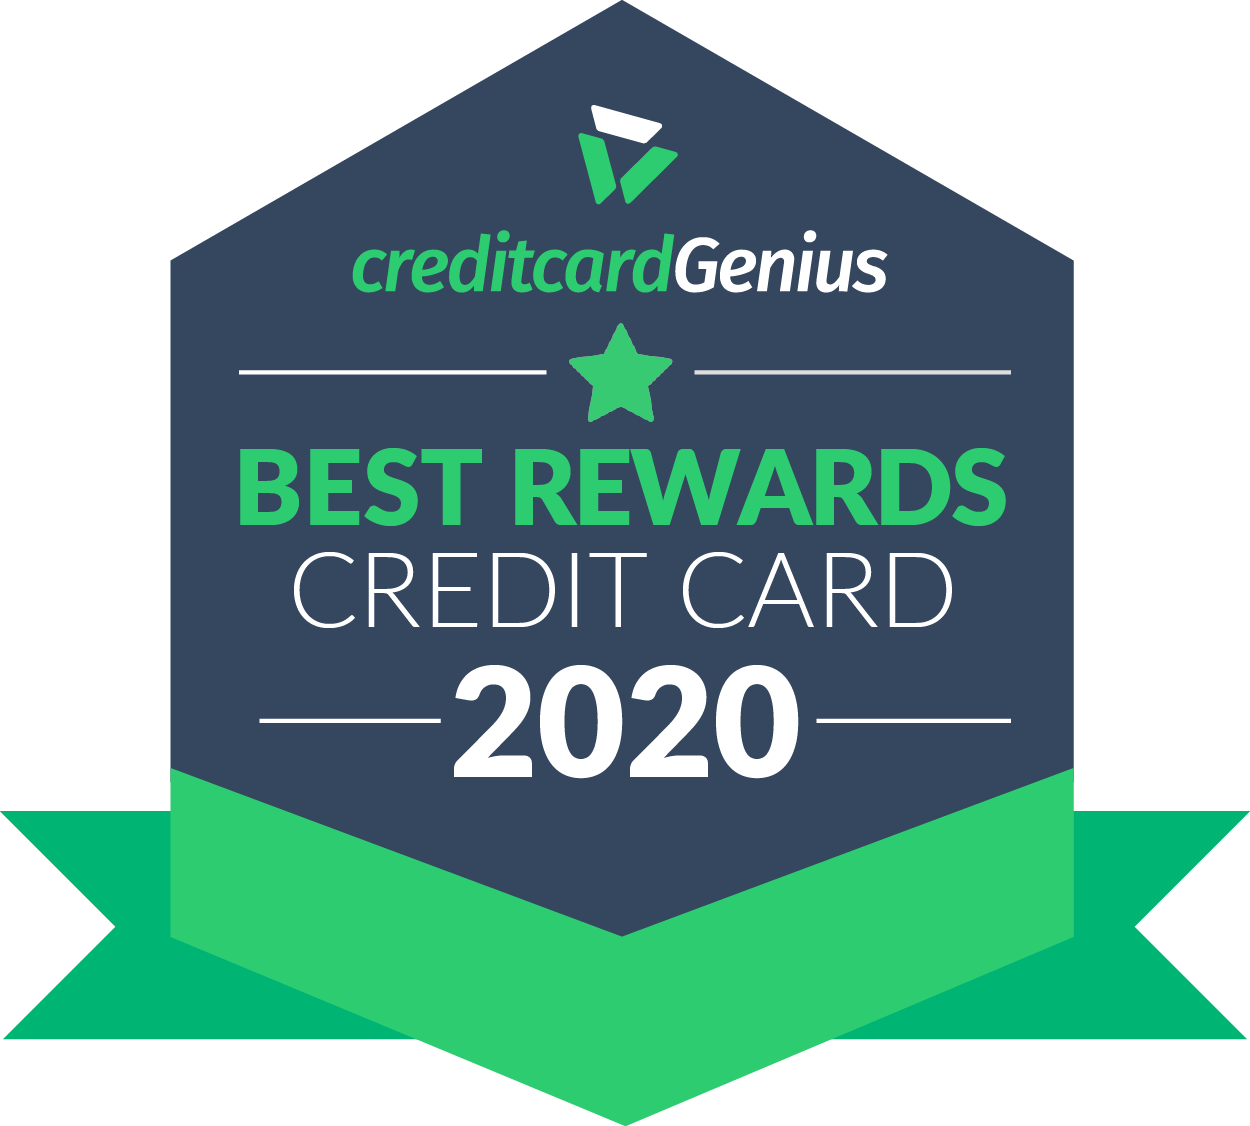 Best rewards credit card in Canada for 2020 award seal